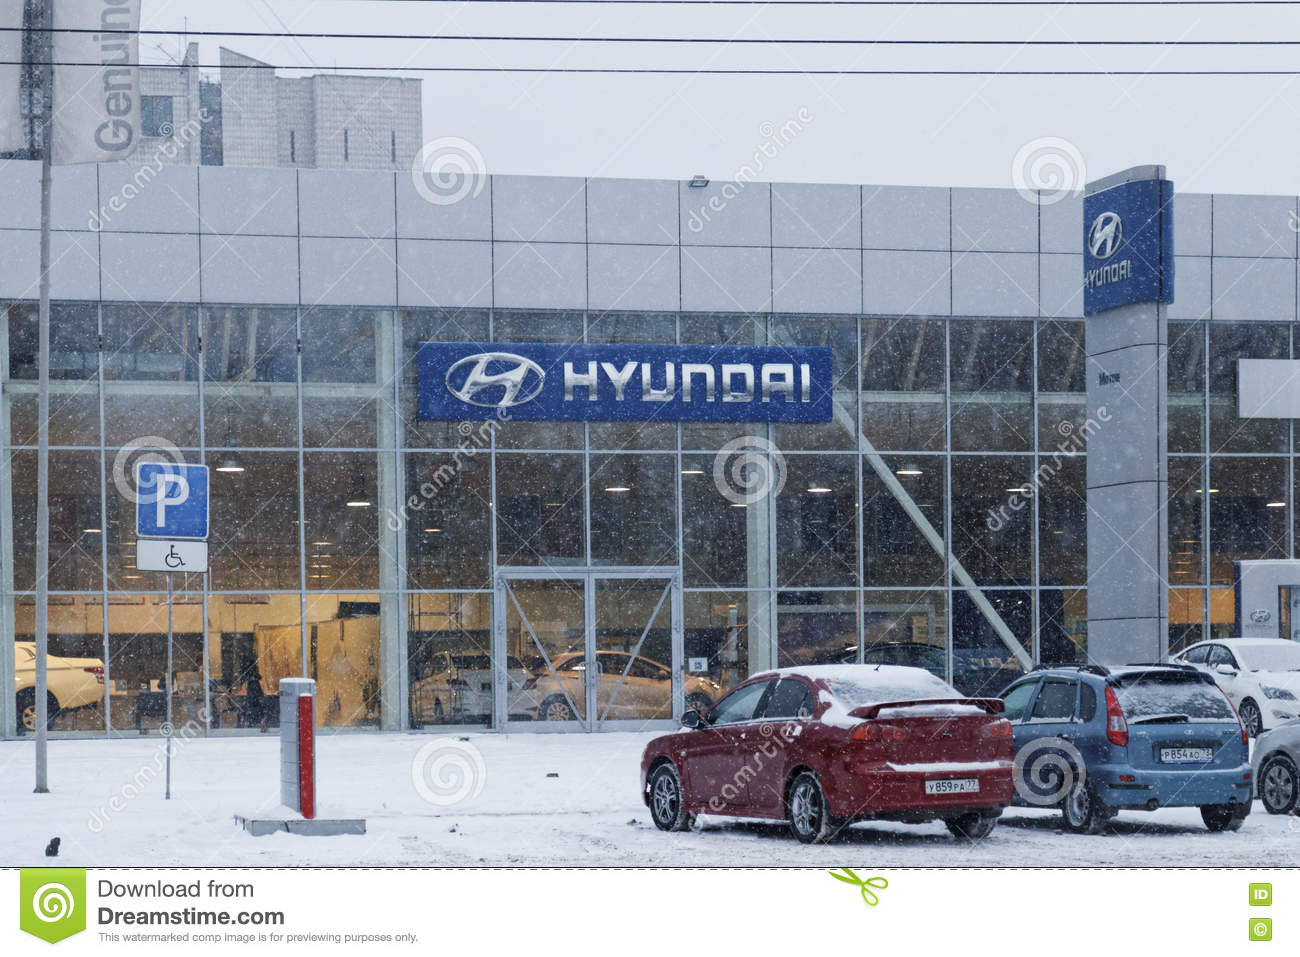 Building Of Hyundai Car Selling And Service Center